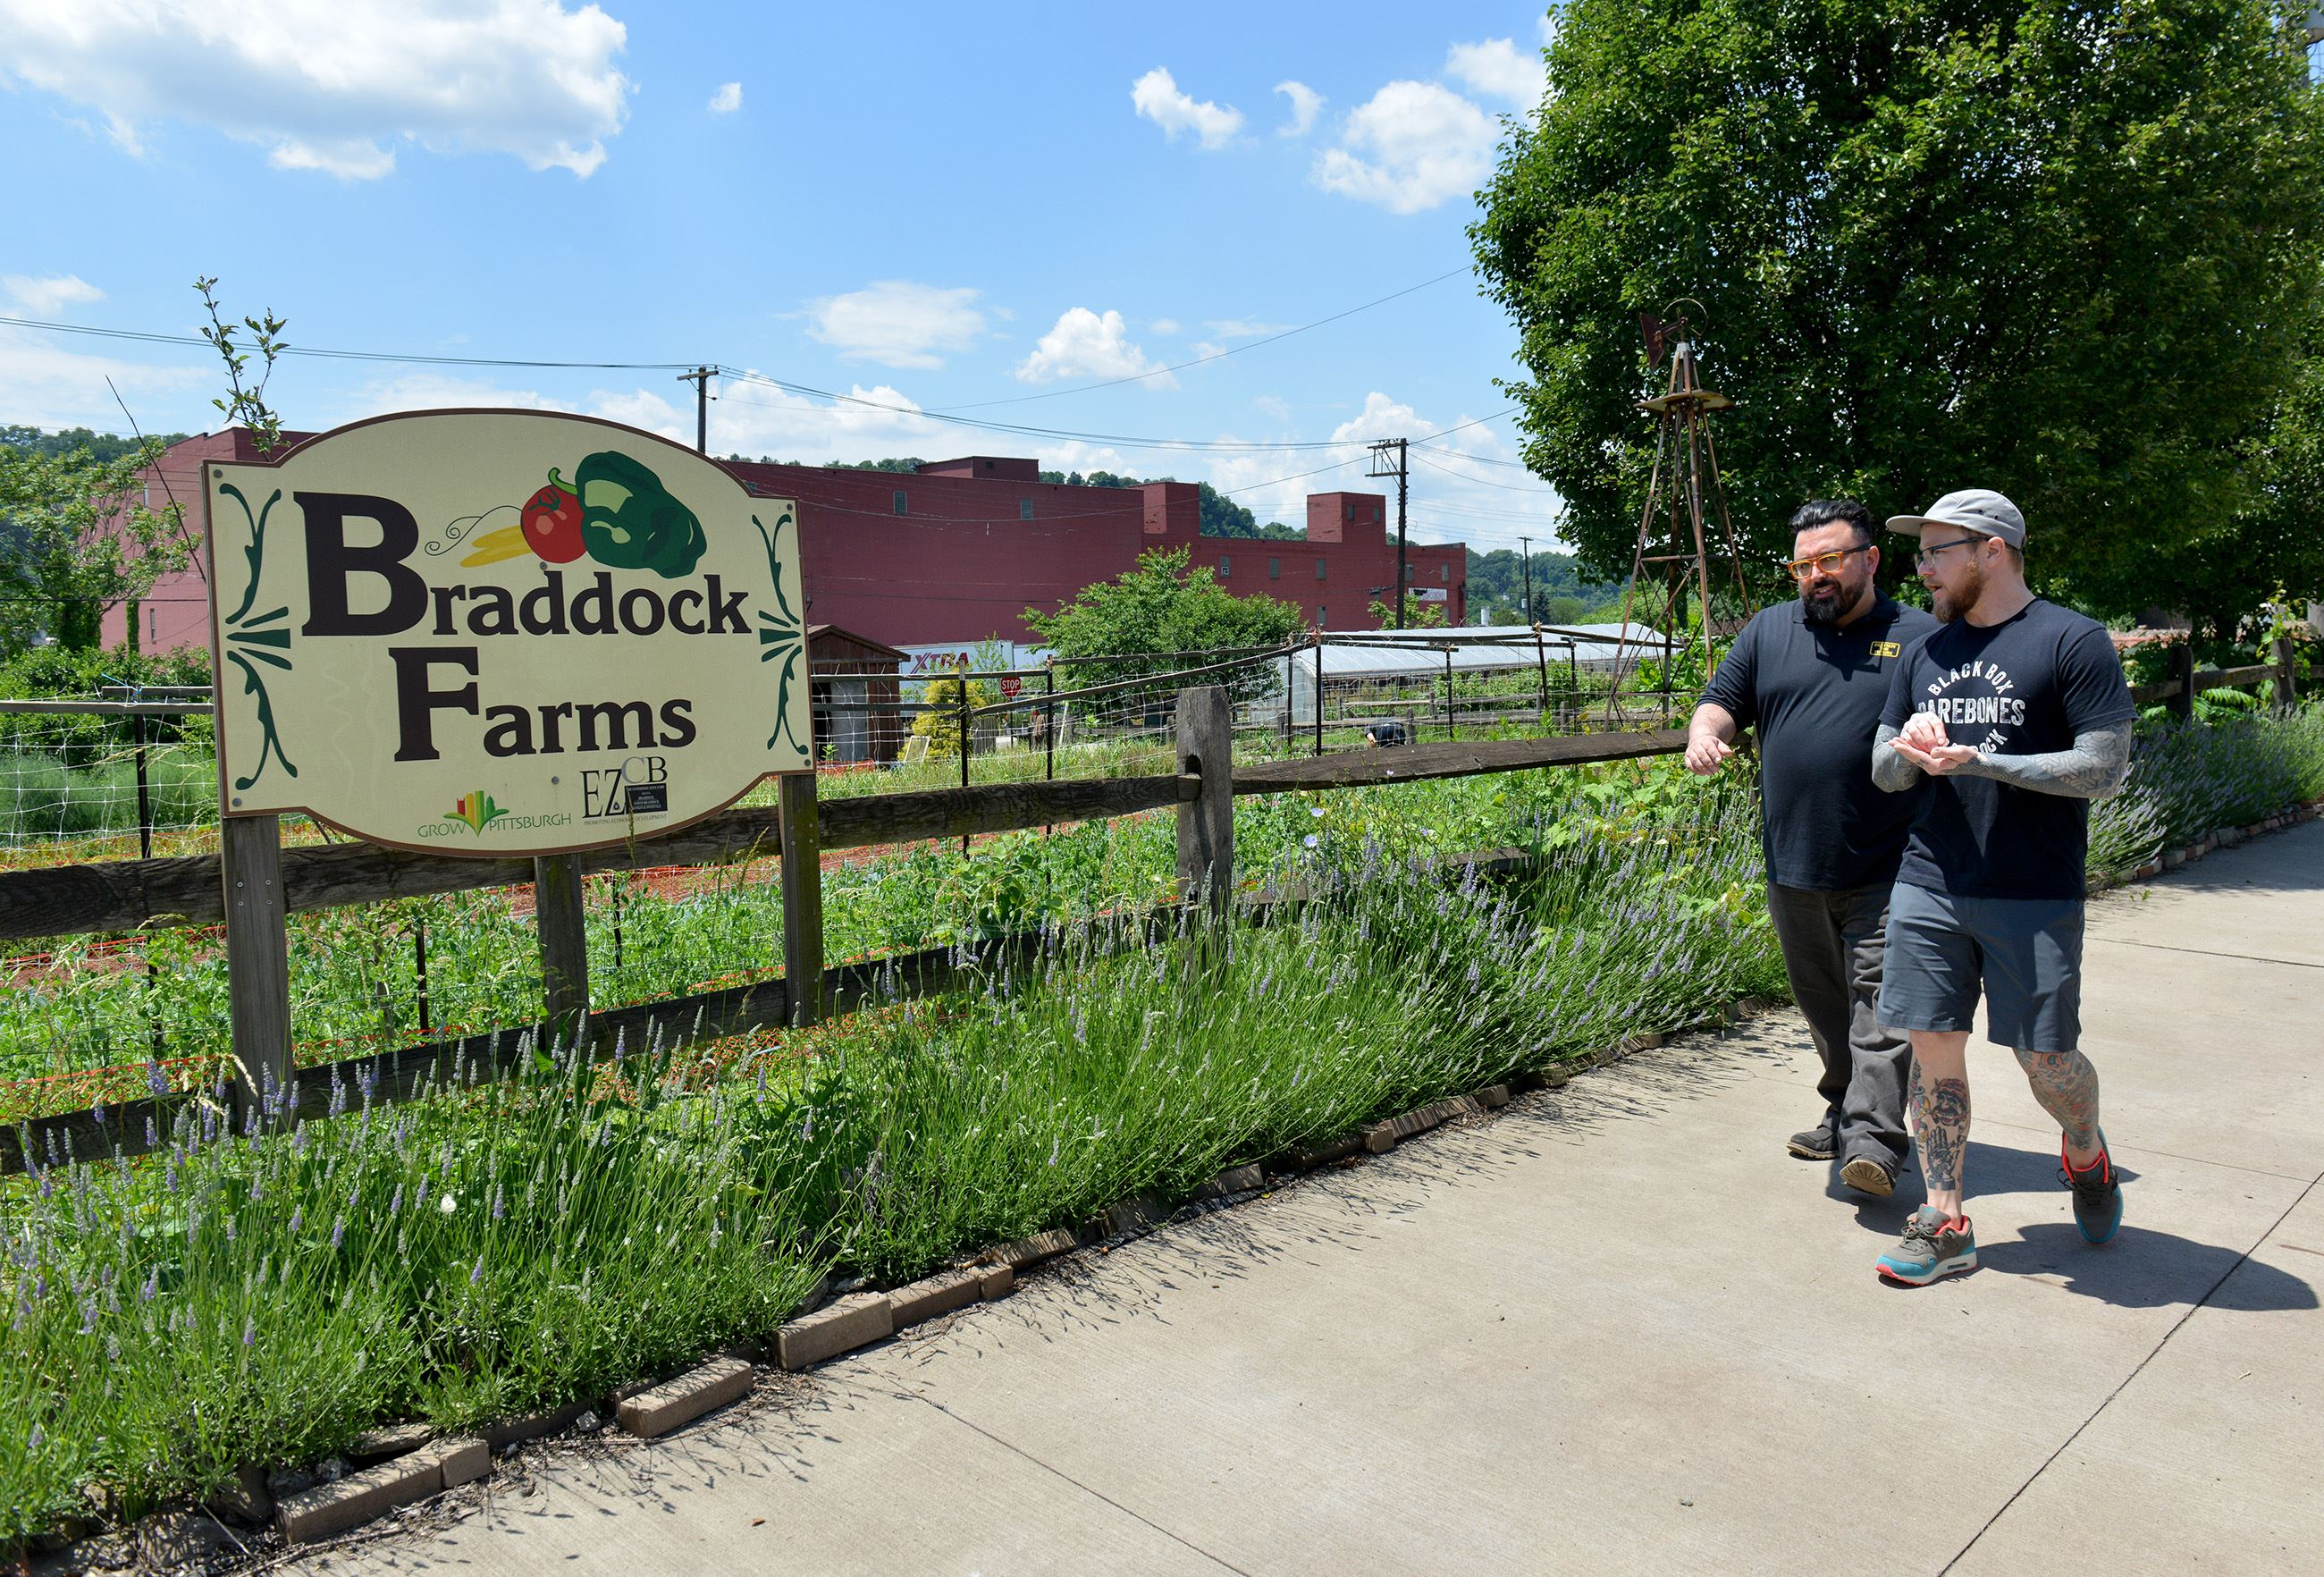 20170609ppSuperiorMotors5LOC-4 General manager Chris Clark, left, and owner Kevin Sousa walk back to their restaurant after visiting Braddock Farms down the street from the restaurant.